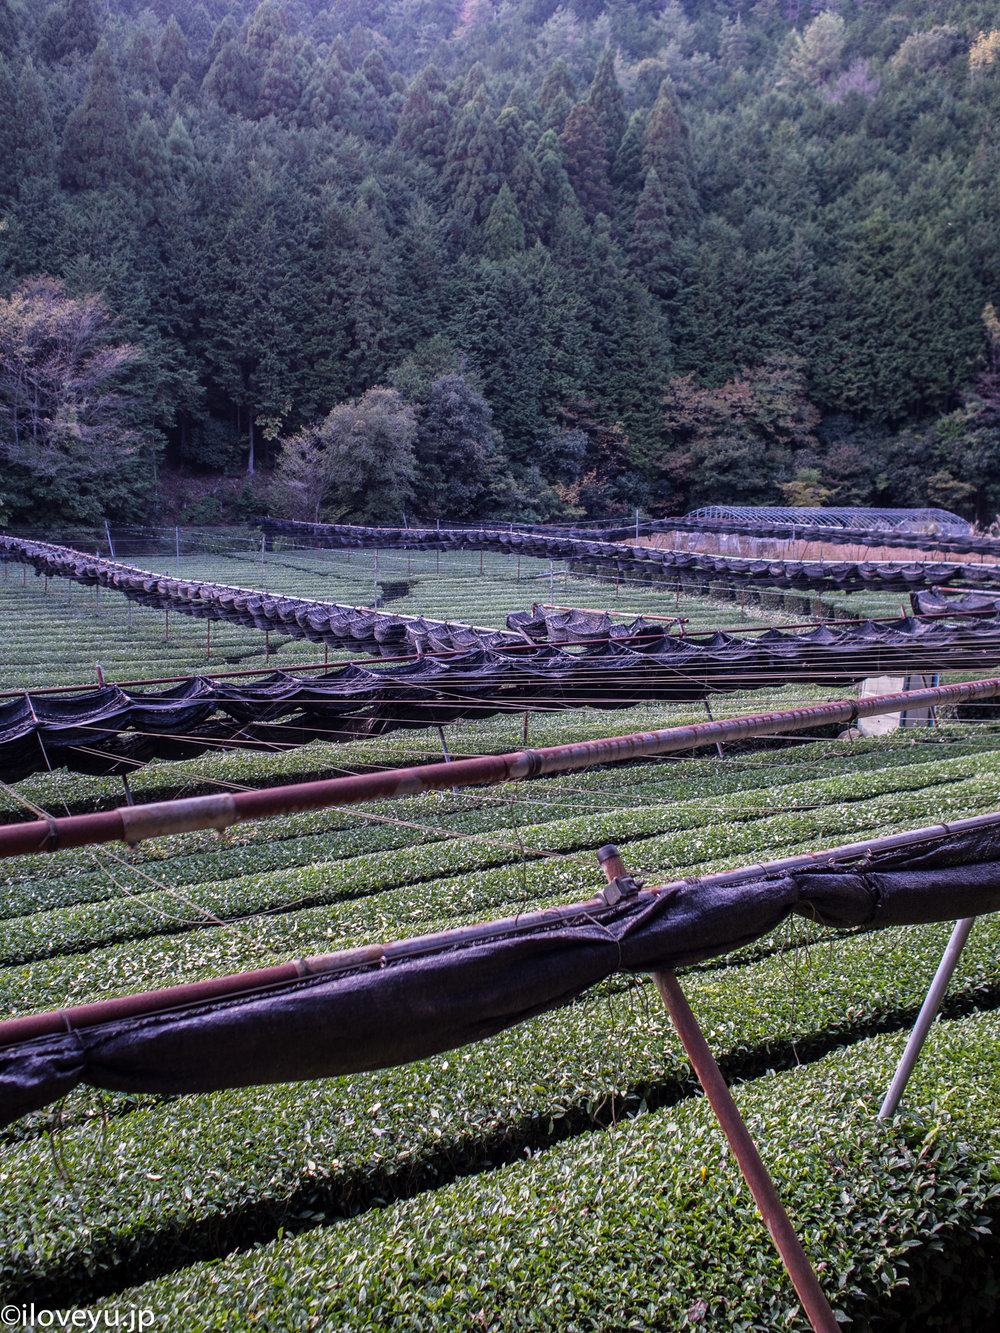 10- It was just amazing to come out of the mountain and discover this little valley and all the tea farms.